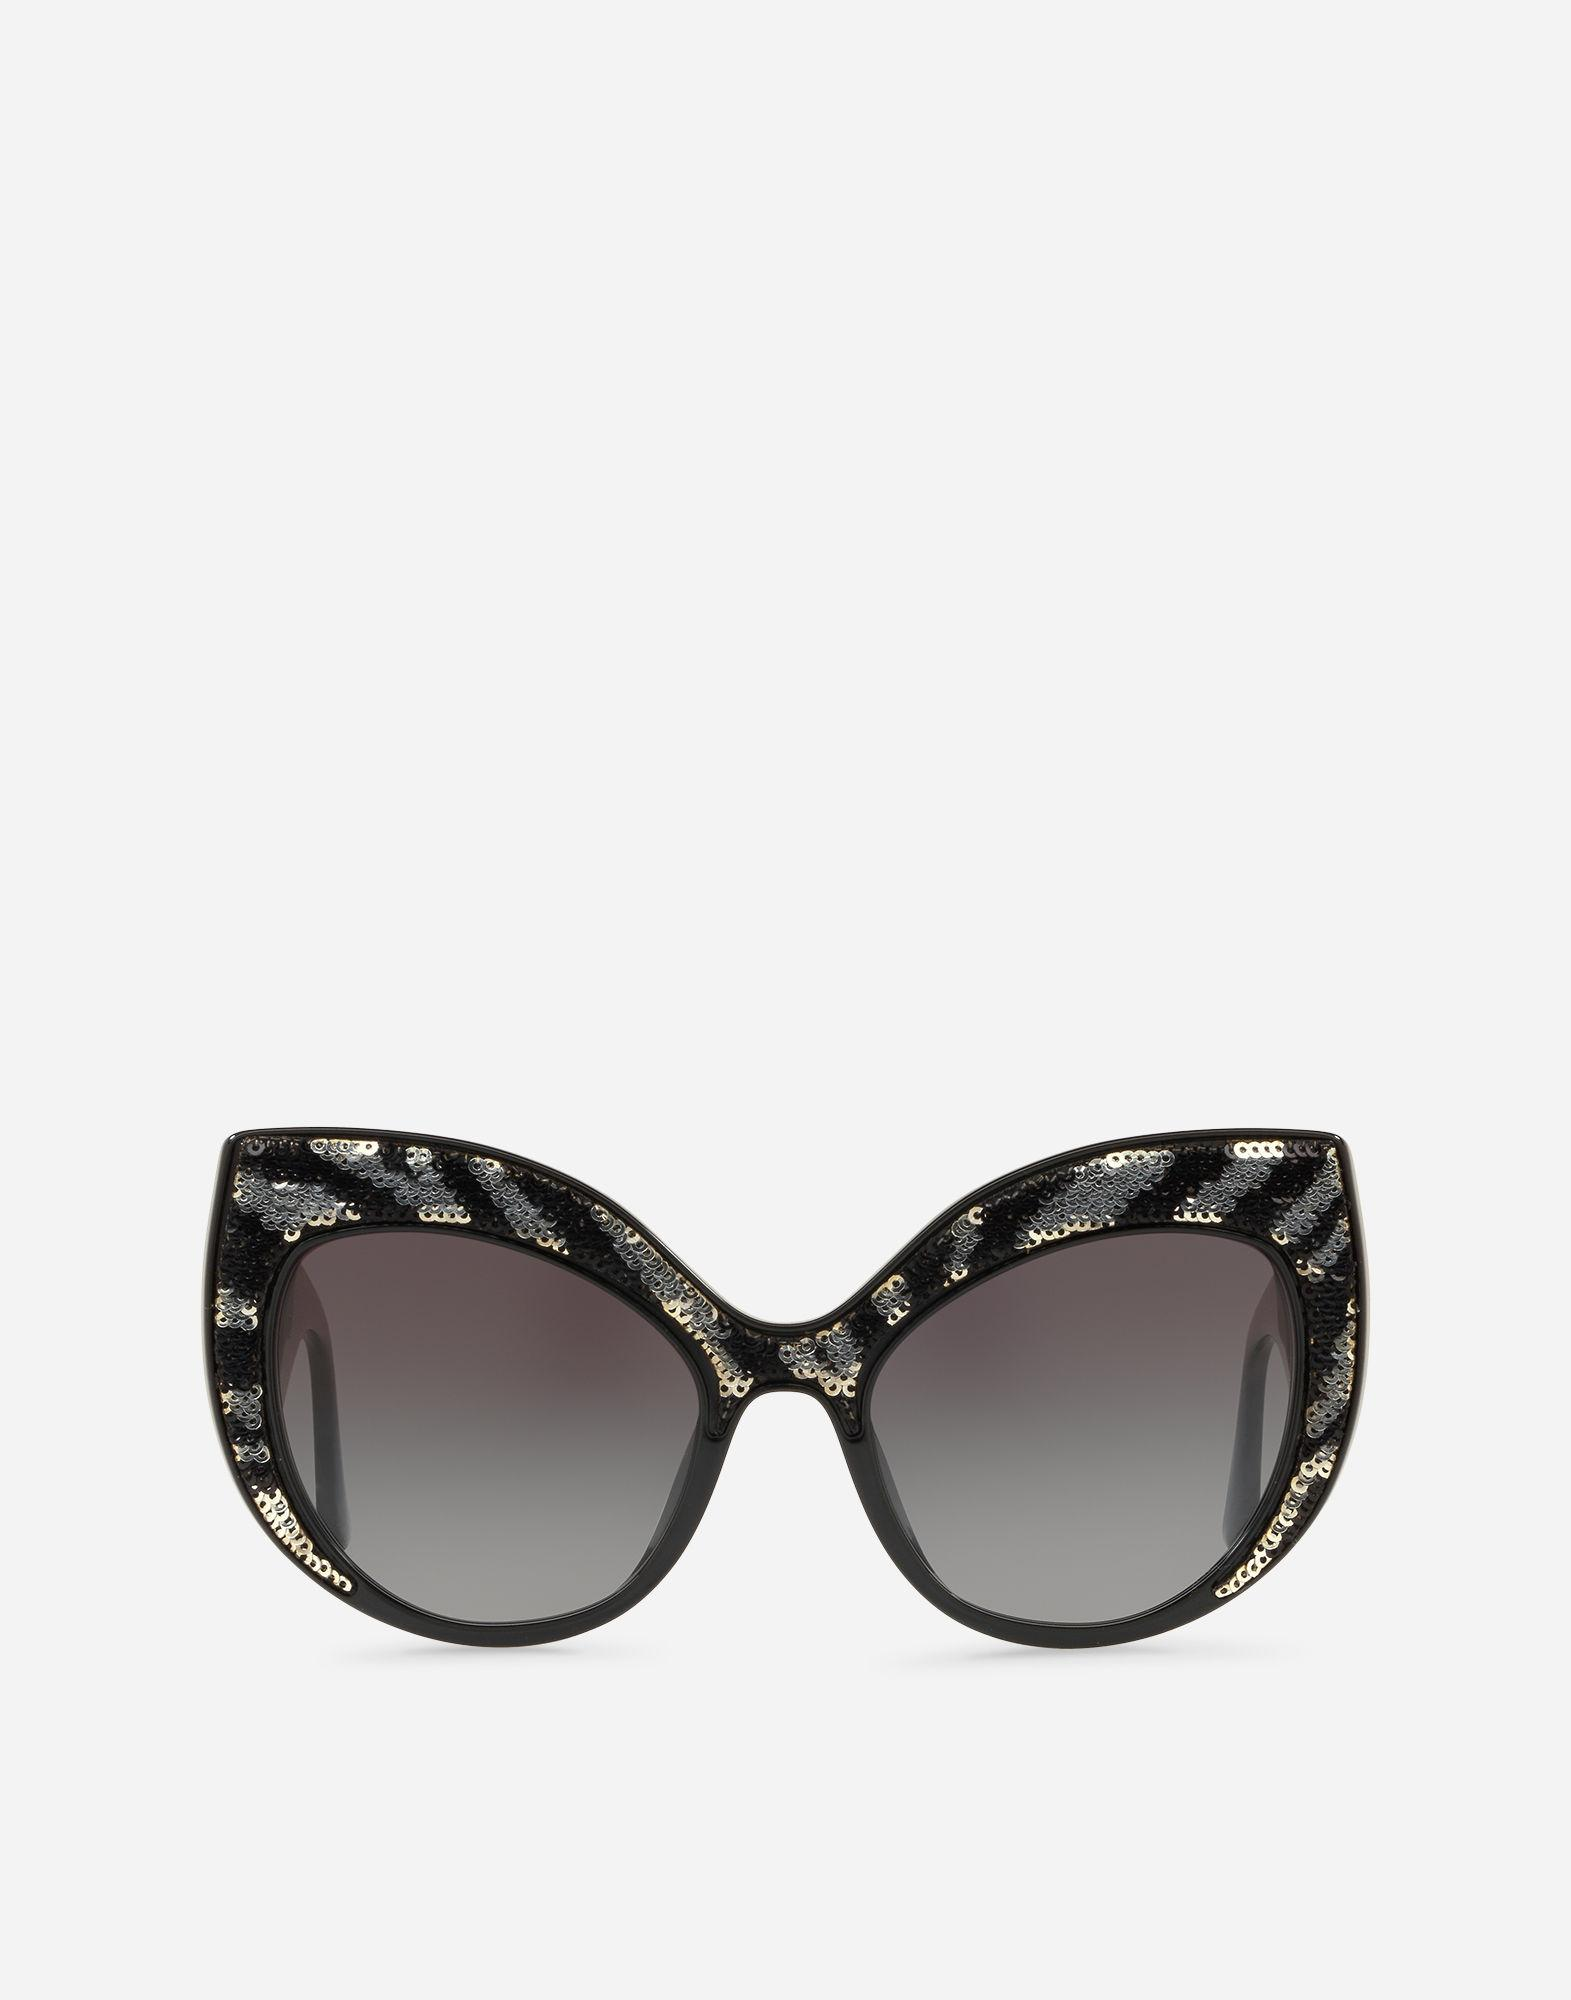 9e9a281bc2d Dolce   Gabbana Oversize Cat-Eye Sunglasses In Acetate With Sequins In Black  With Shiny